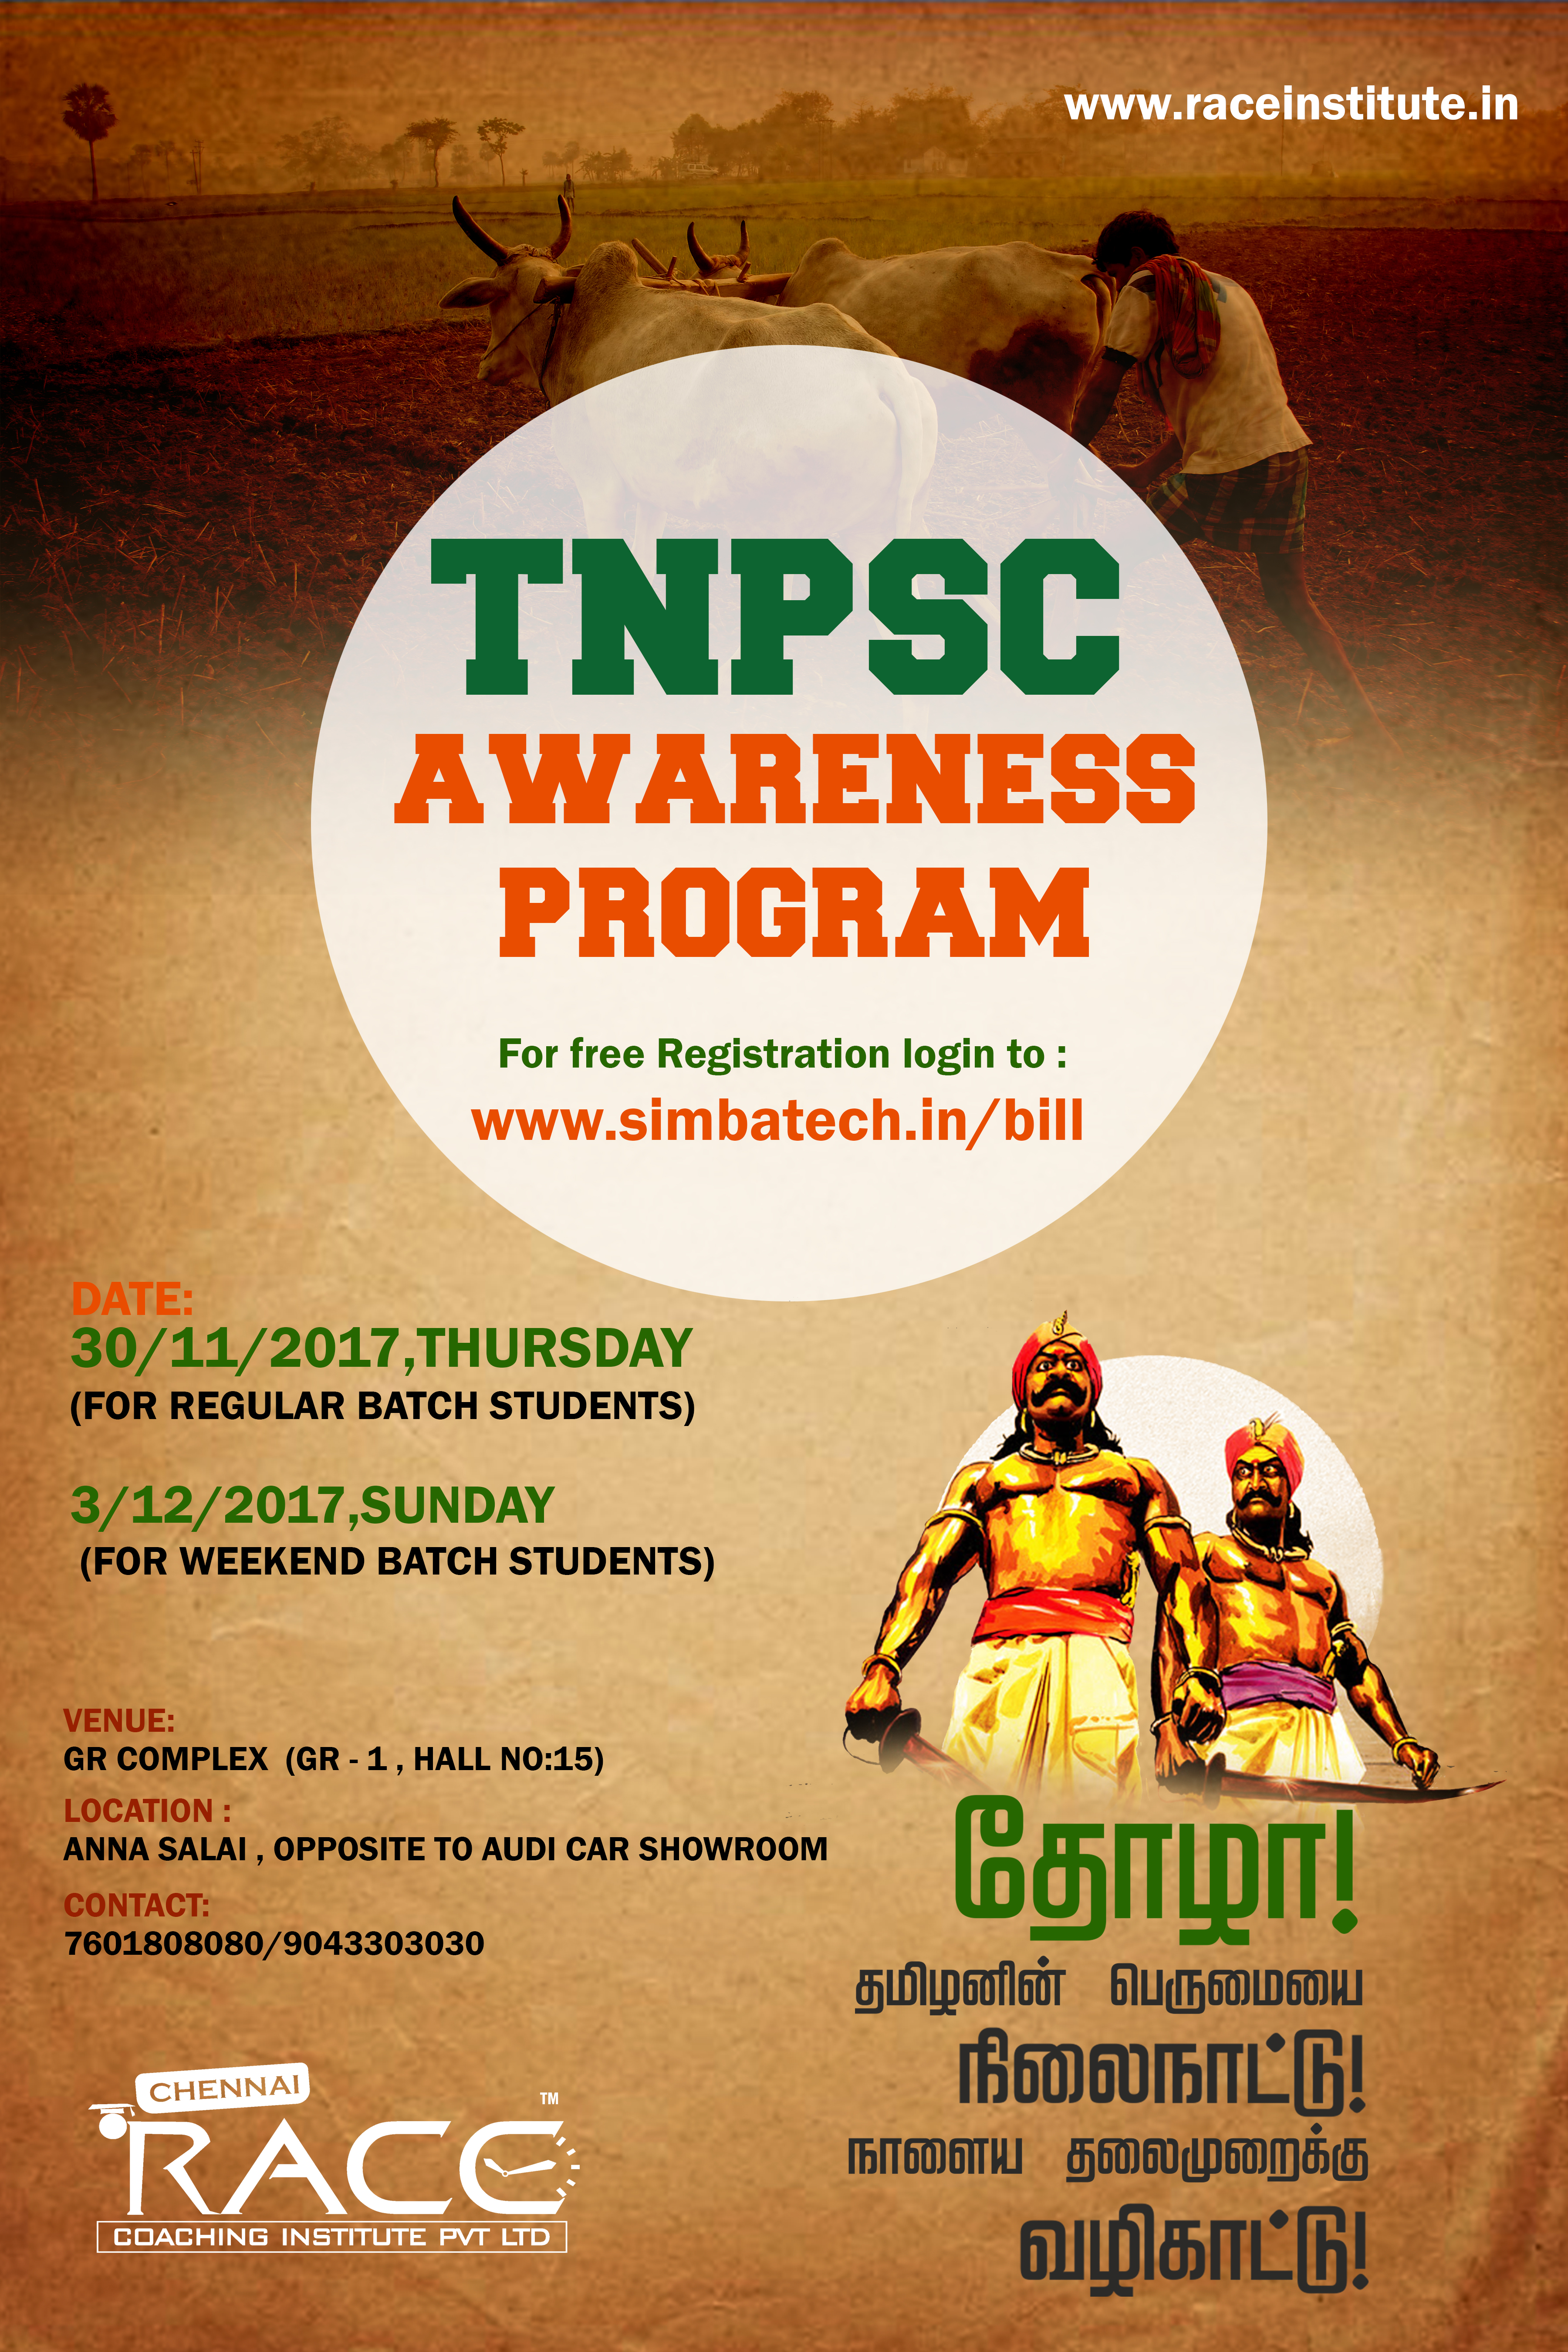 TNPSC awareness program